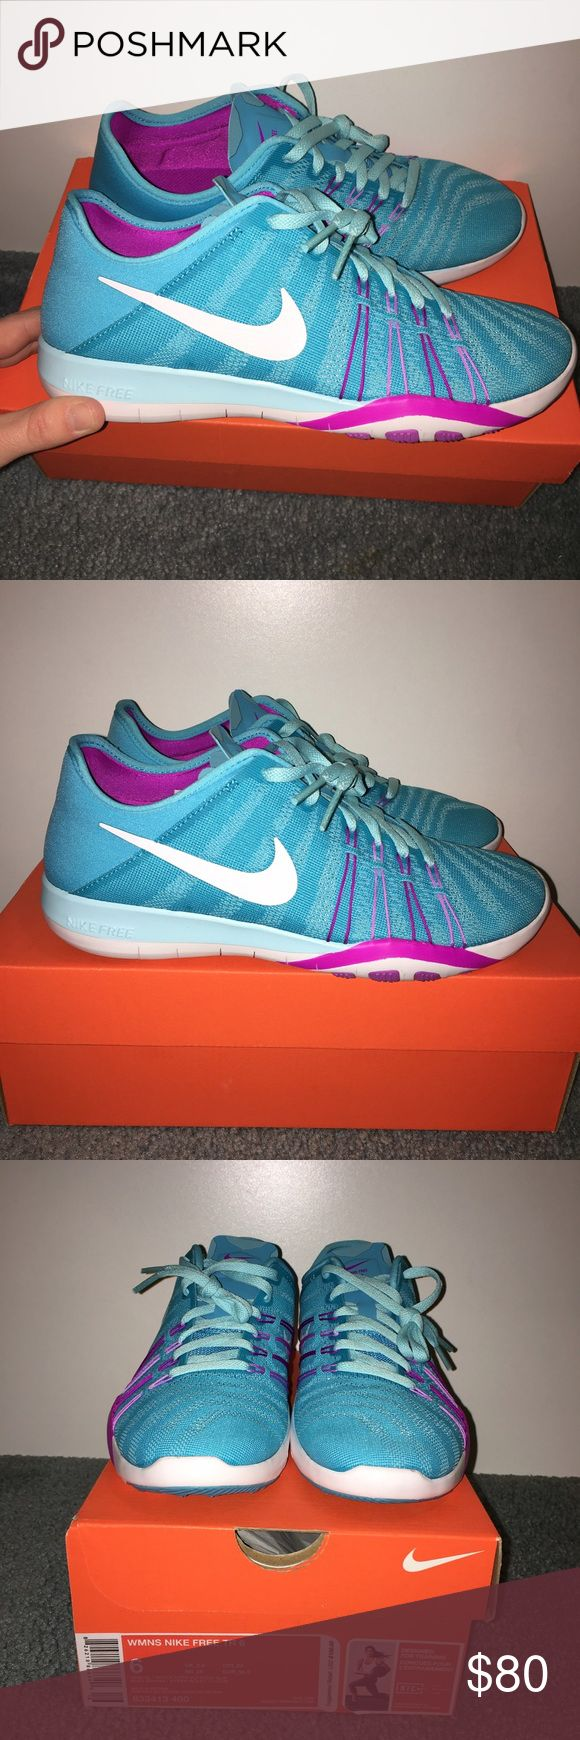 (6) Nike Free Run Training 6 Brand new in box Women's size 6 Baby blue & purple Nike training shoes   Retails for $100 Nike Shoes Athletic Shoes